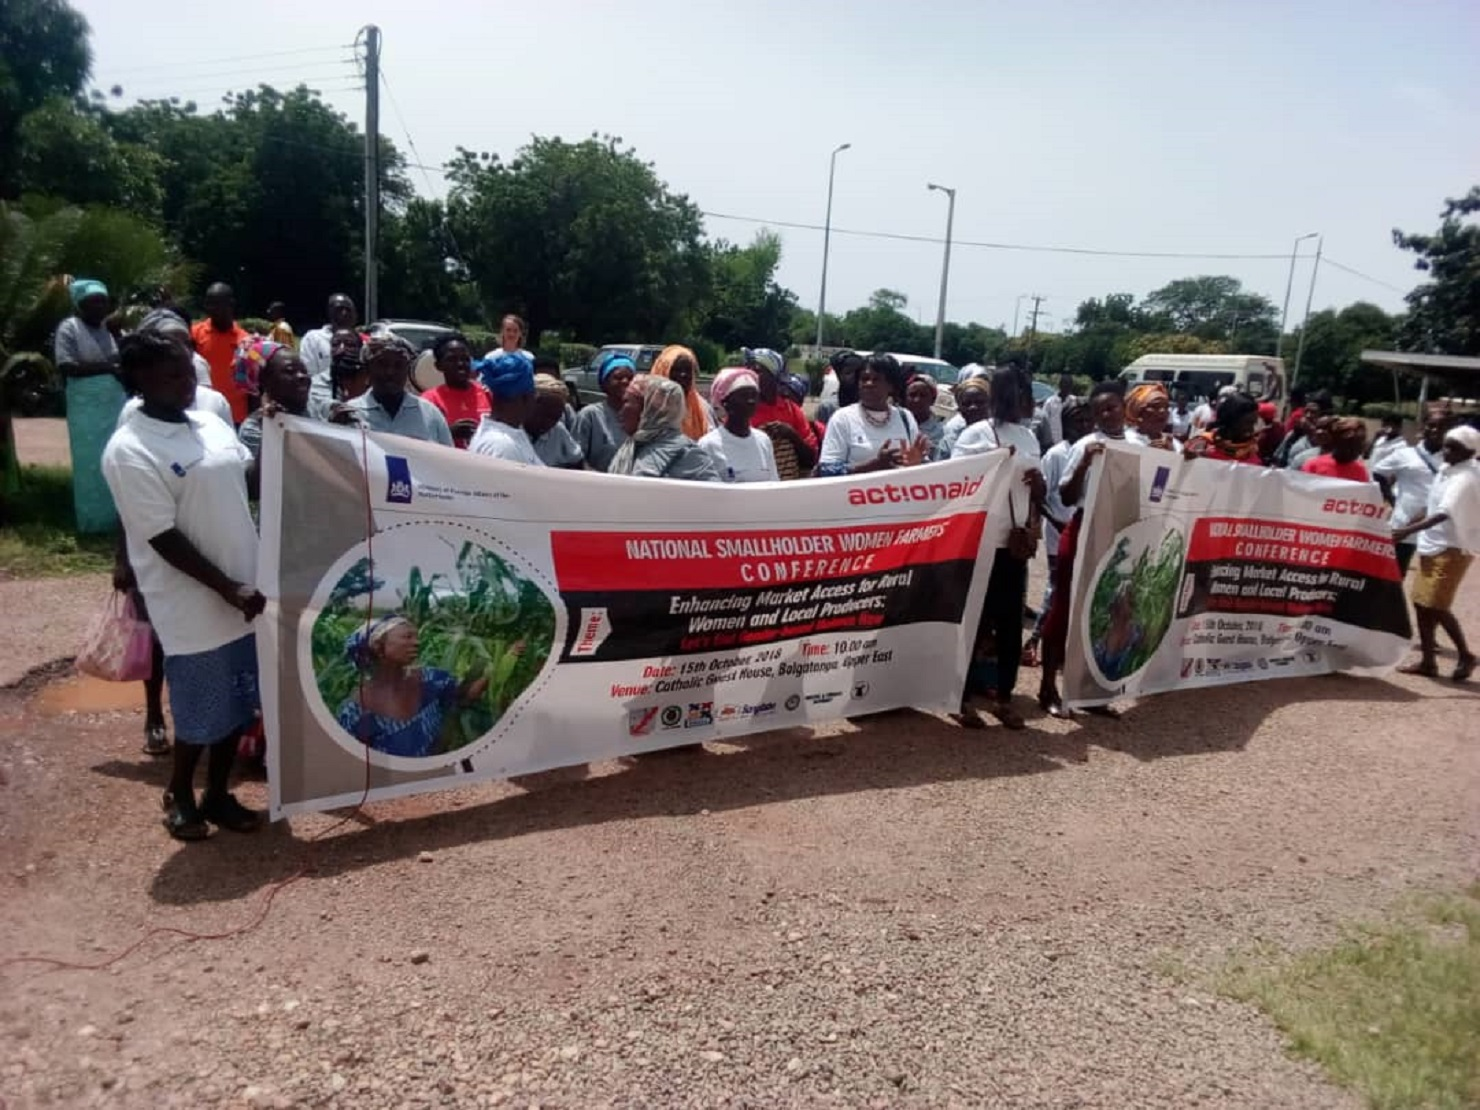 abused women farmers petition akufo addo over injustice globalskyafricaonline com